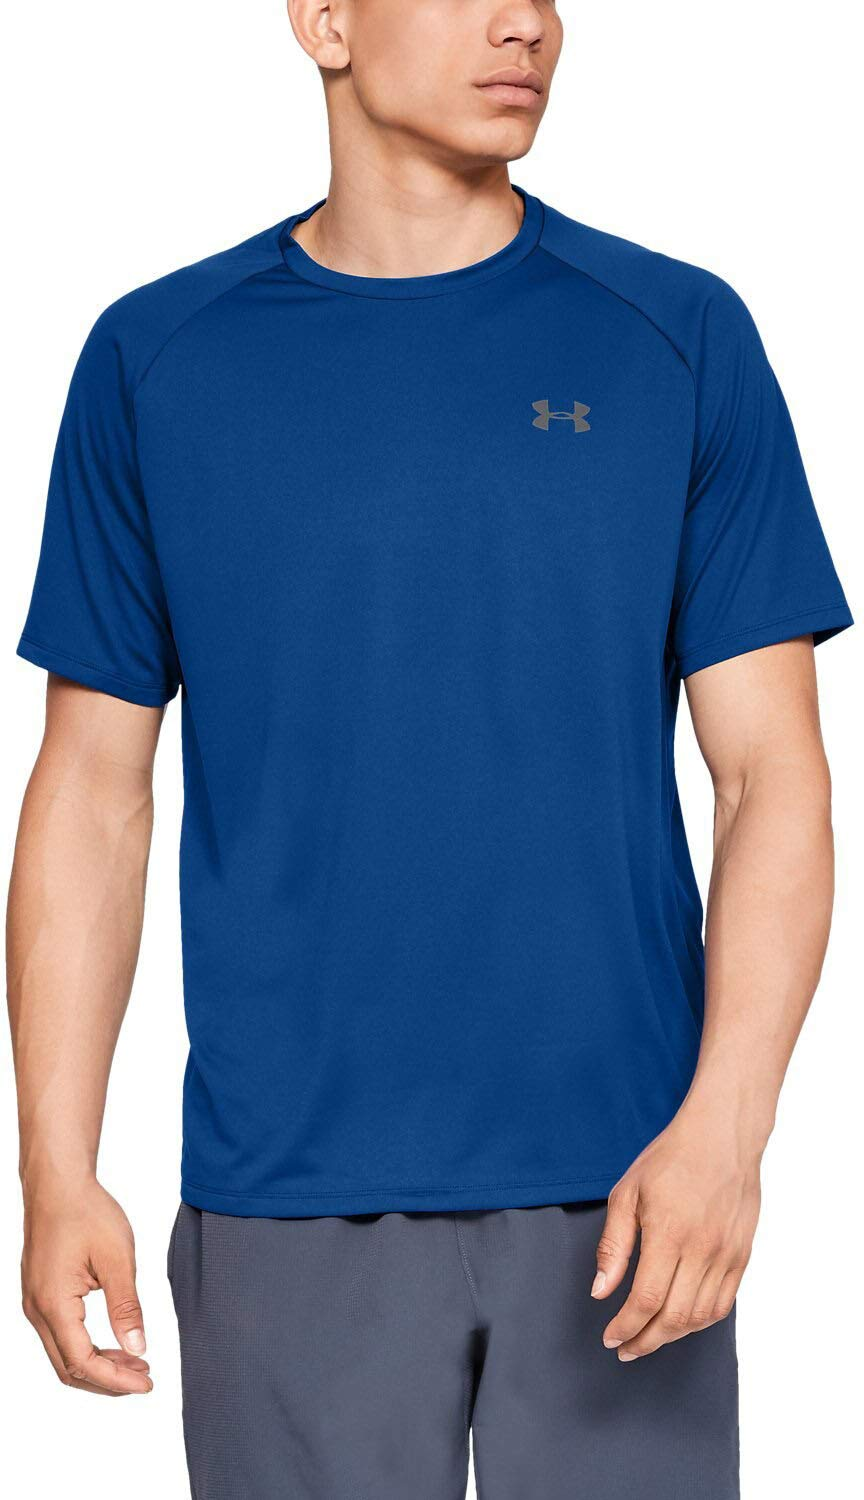 Under Armour Men's UA Tech Short Sleeve Tee 2.0, Royal/Graphite, XS-R